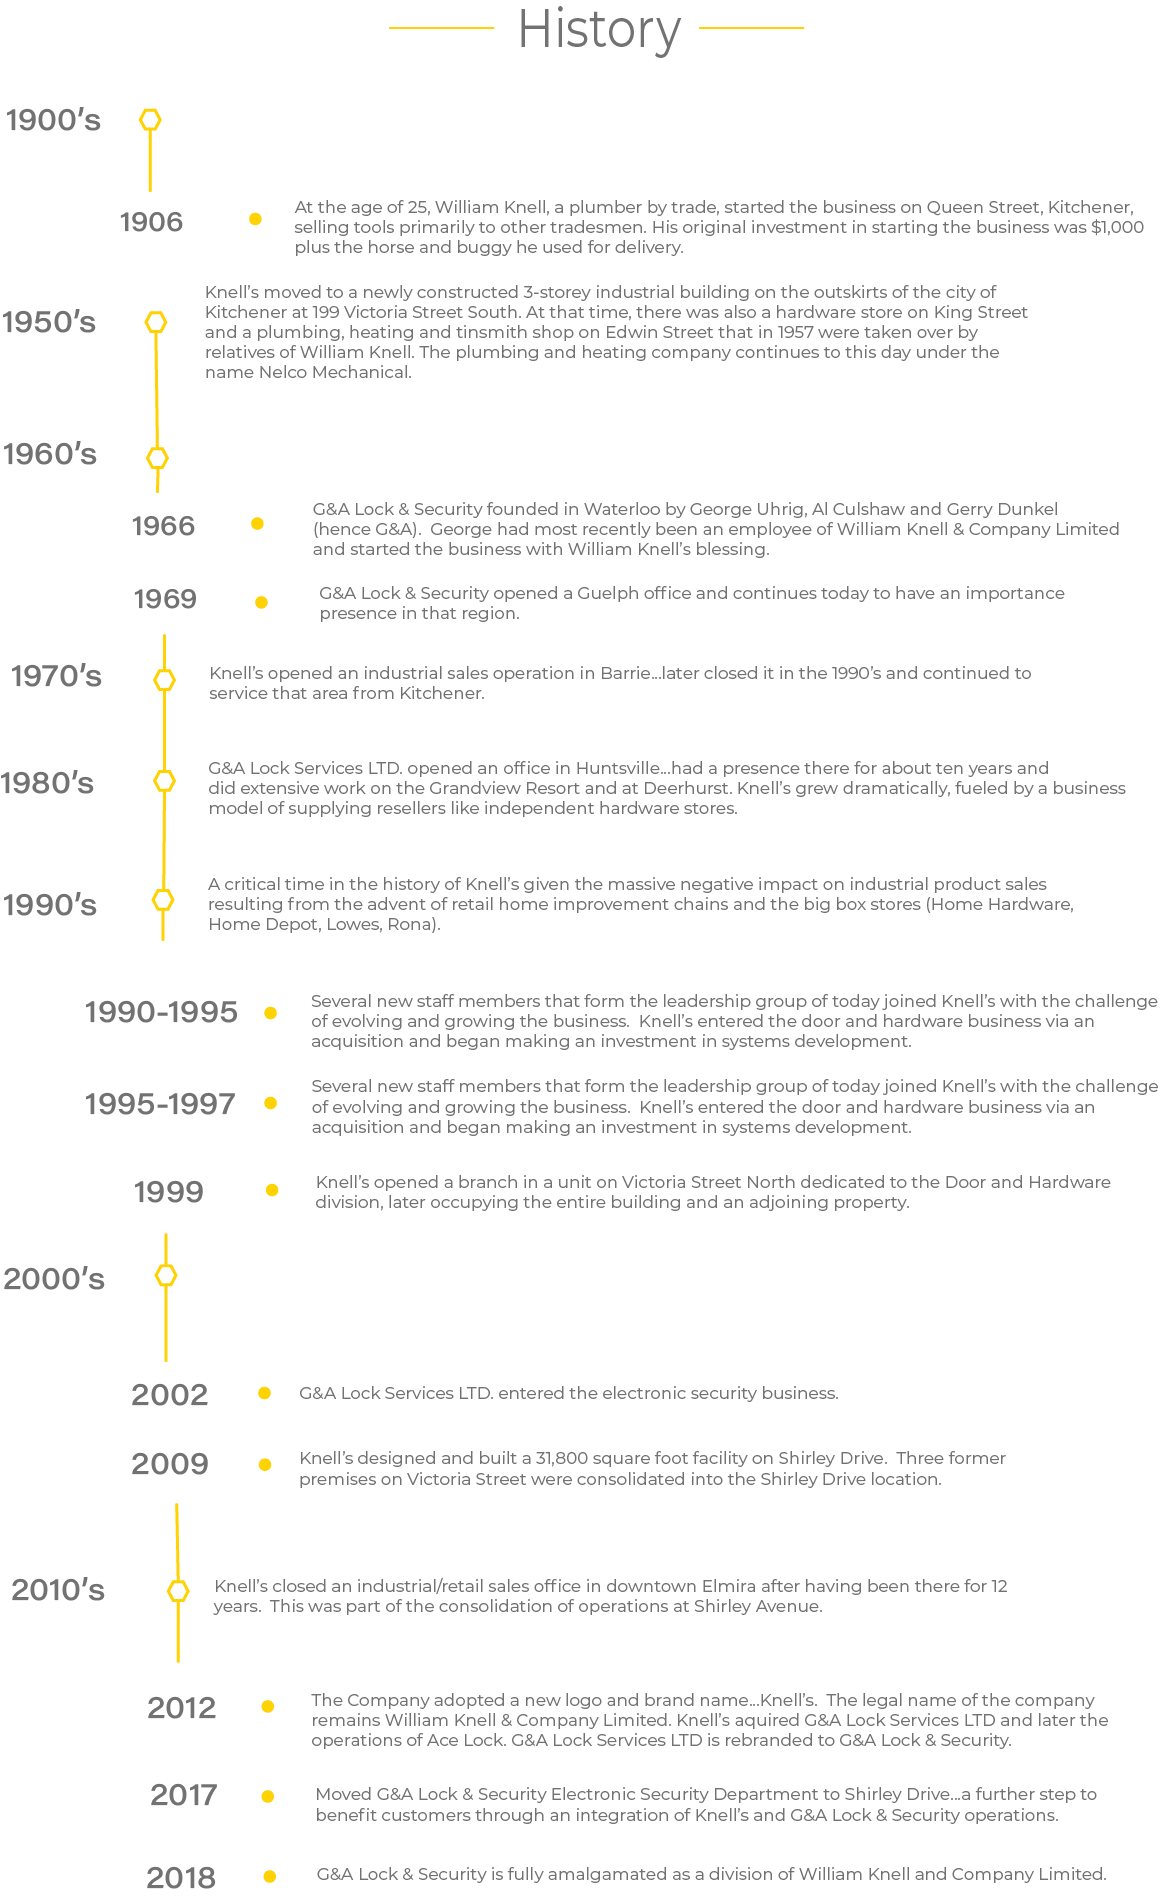 History Timeline of Significant Events